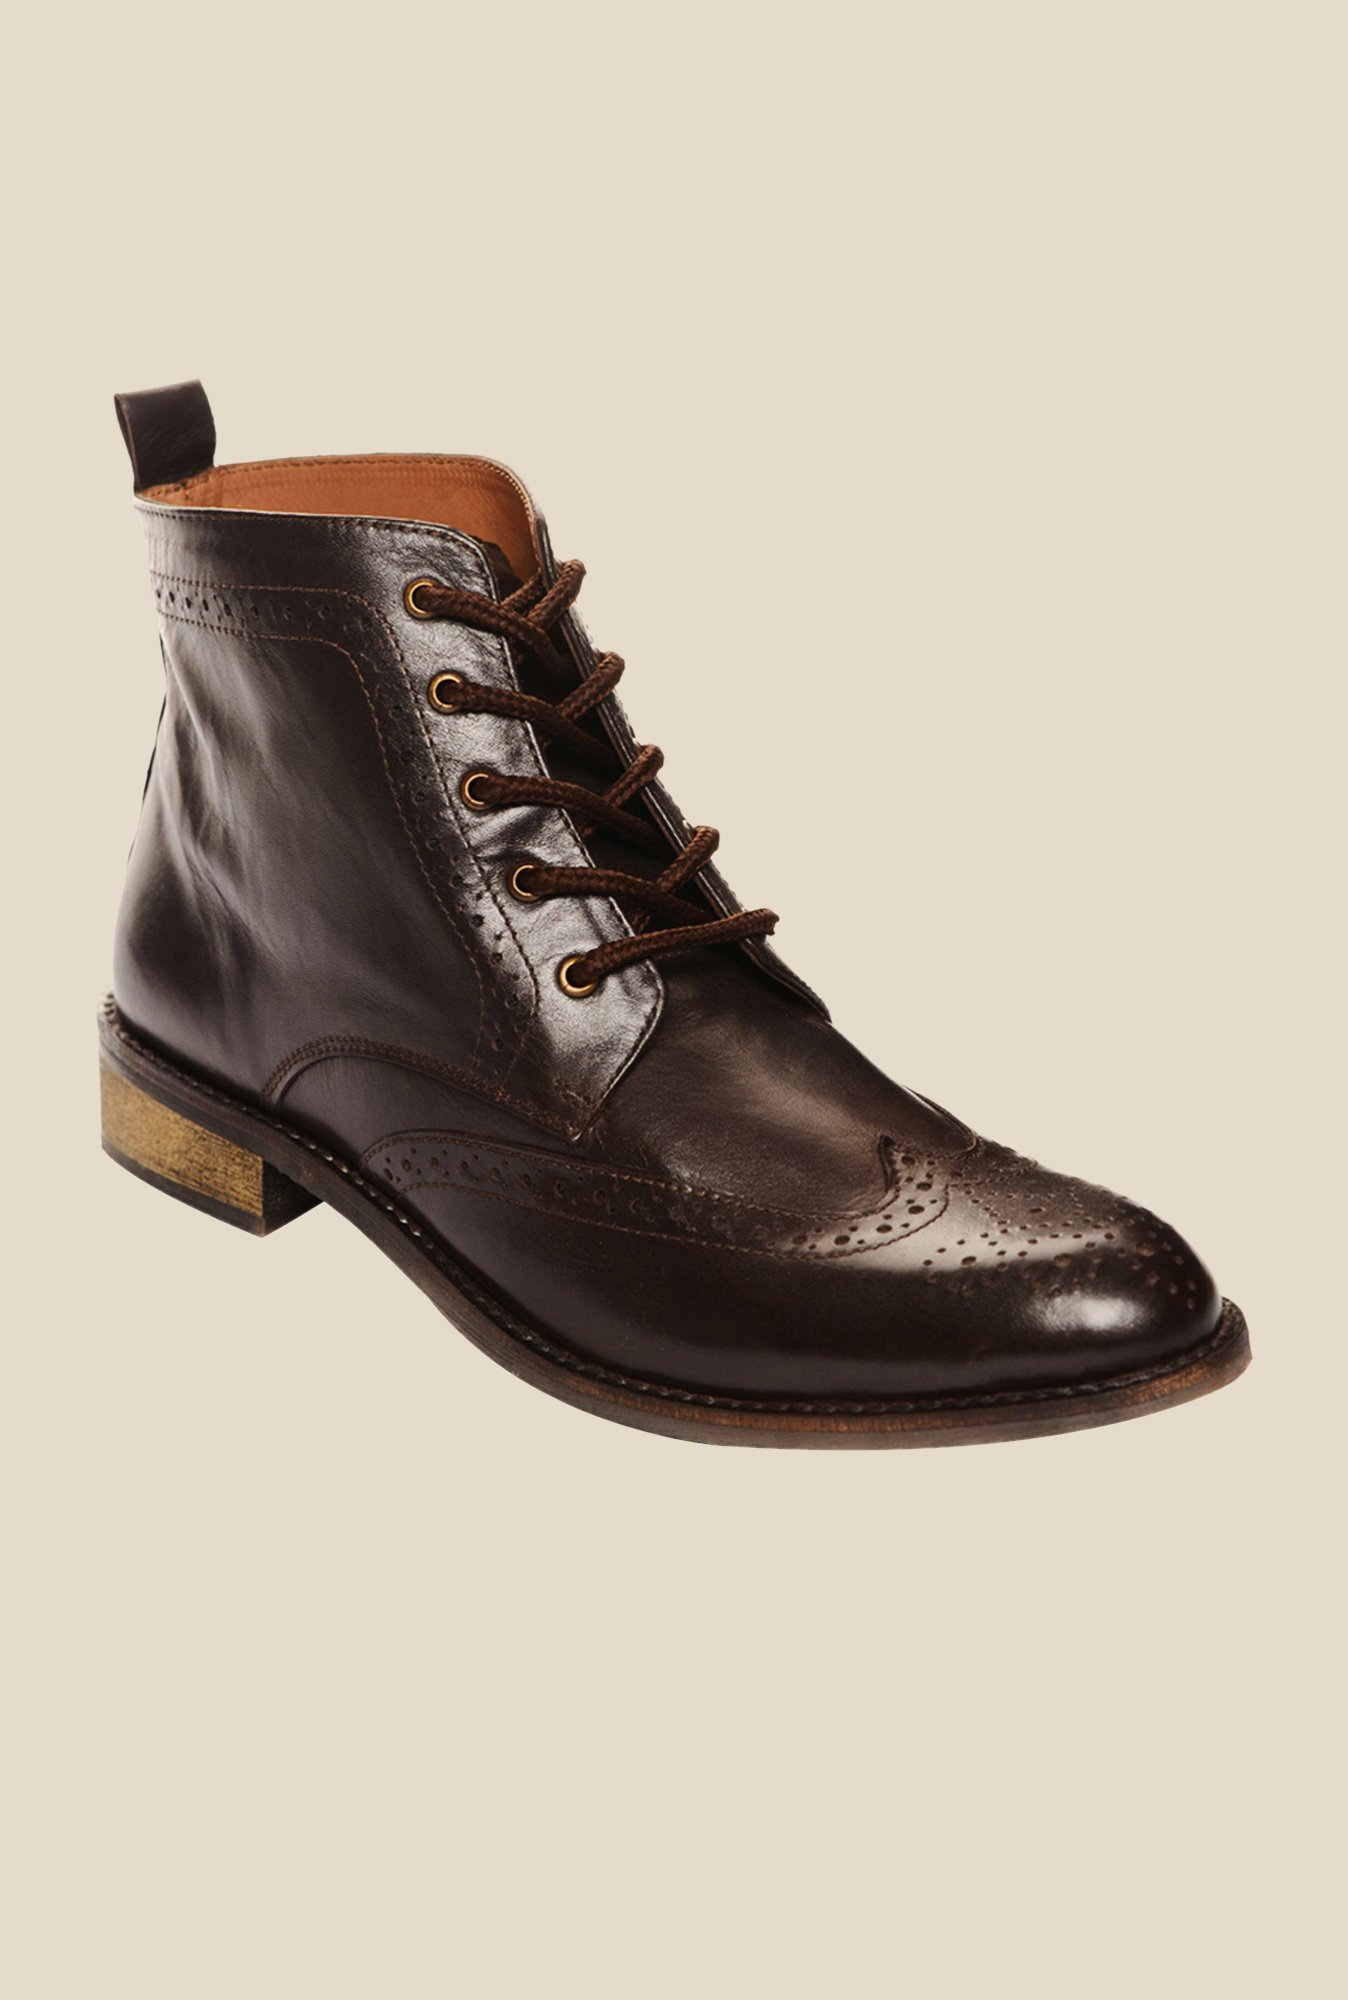 Bruno Manetti Brown Brogue Boots